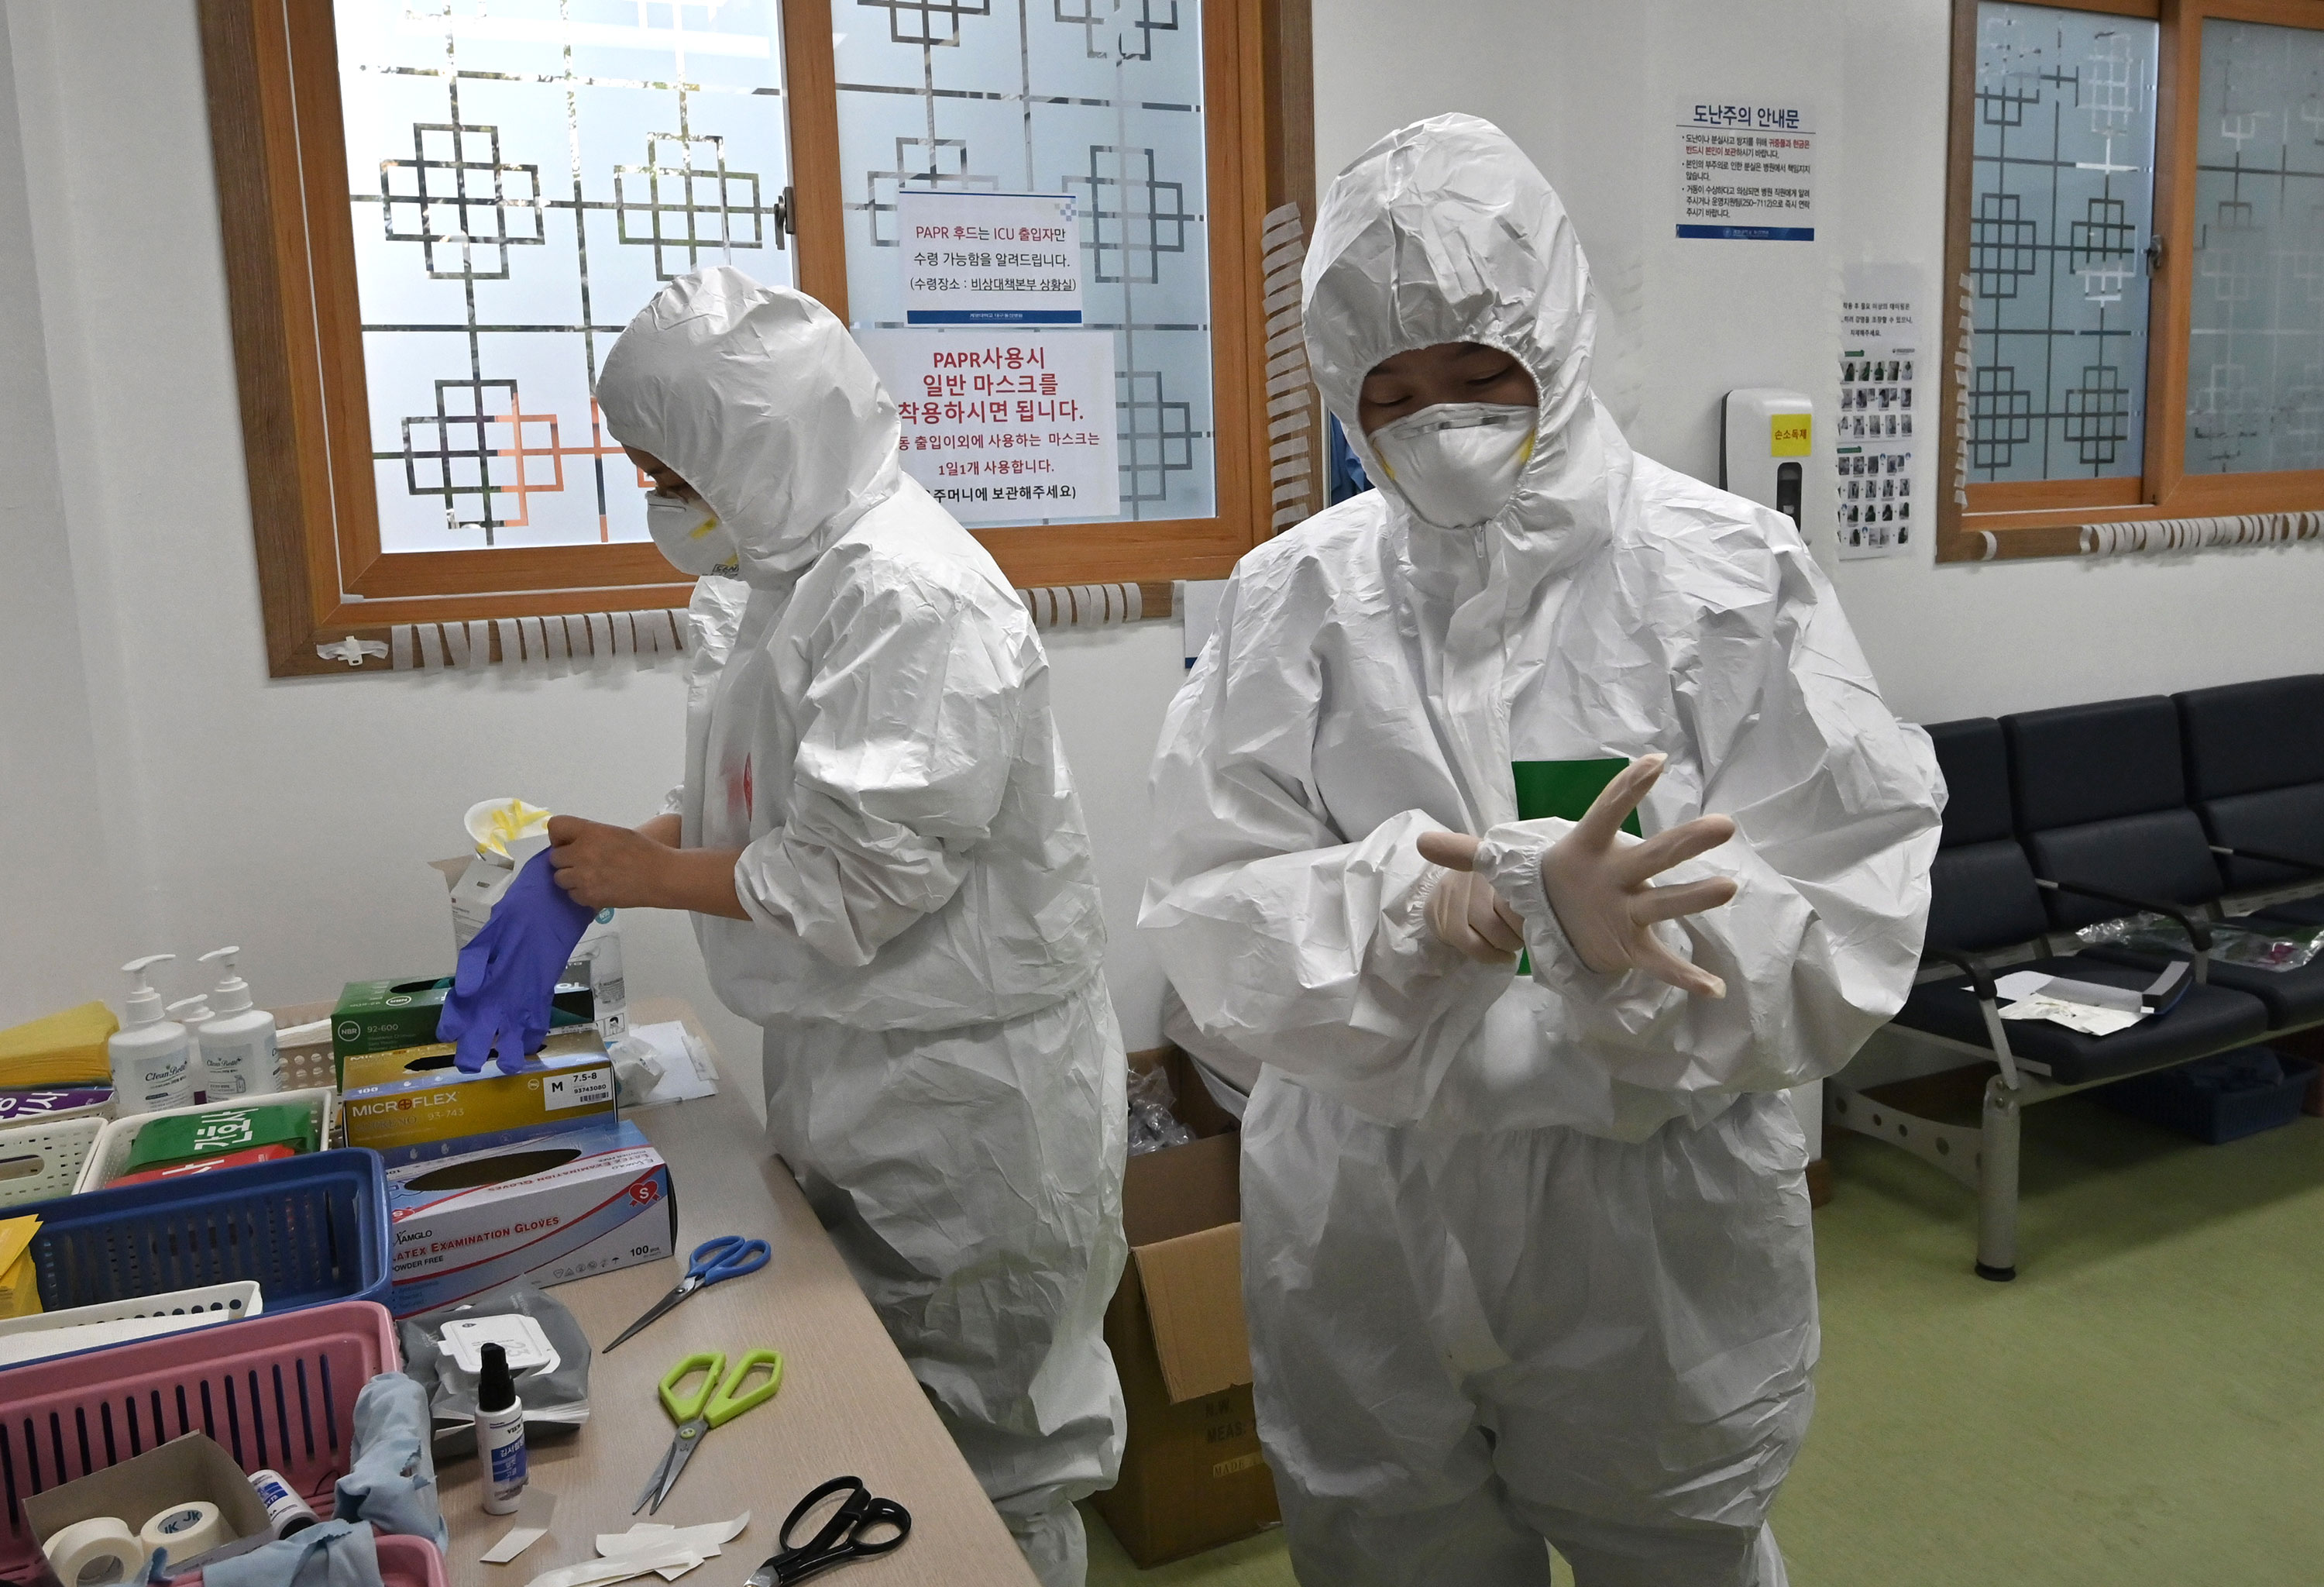 Nurses prepare for a shift caring for coronavirus patients at Keimyung University Daegu Dongsan Hospital in Daegu, South Korea on April 29.